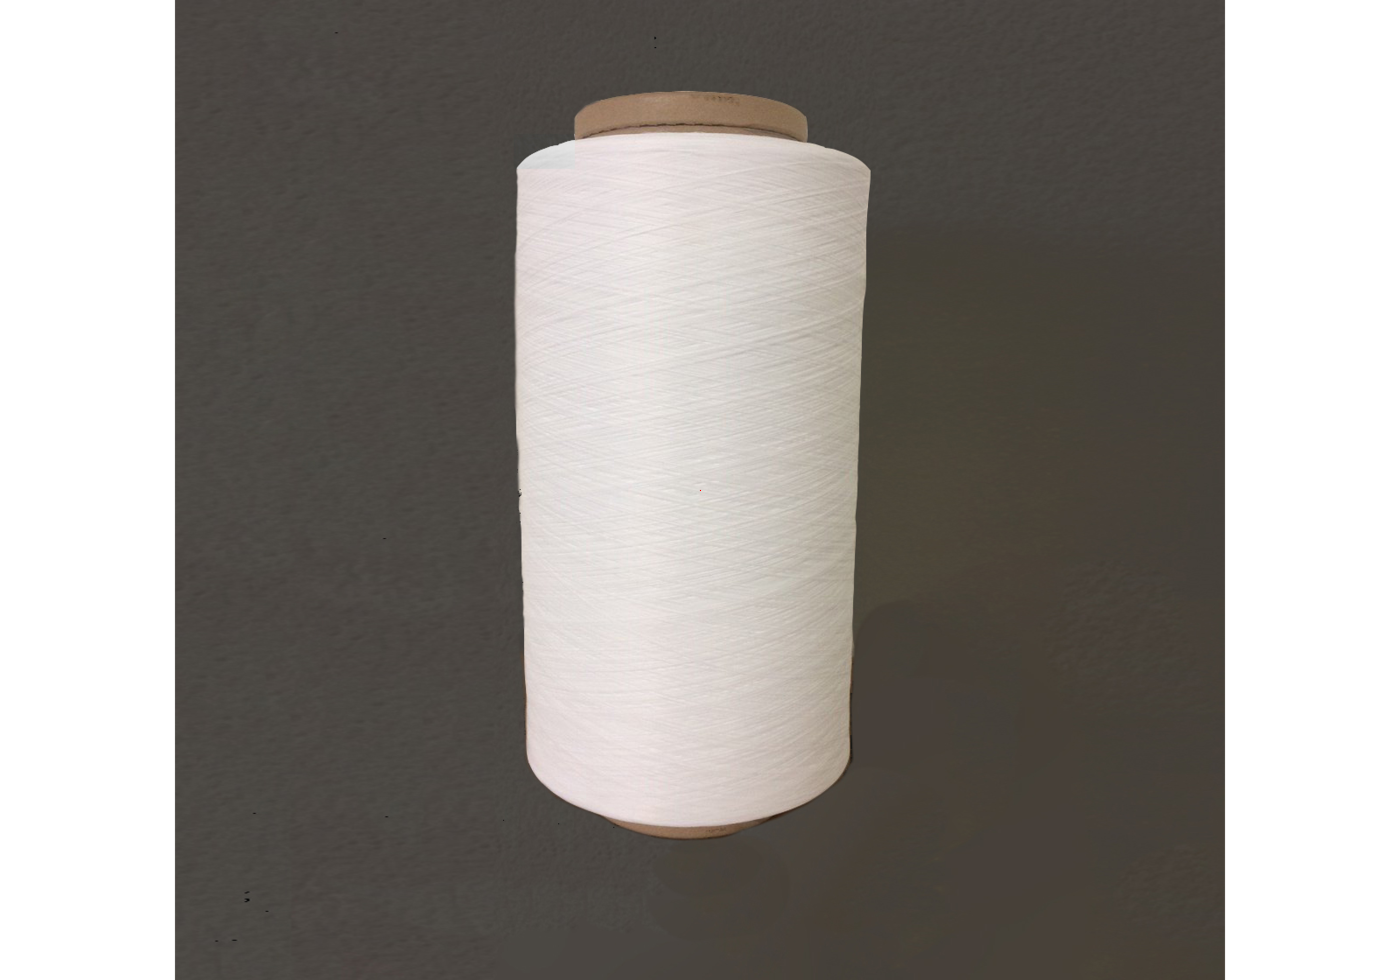 HDPE multilfilament yarn in white